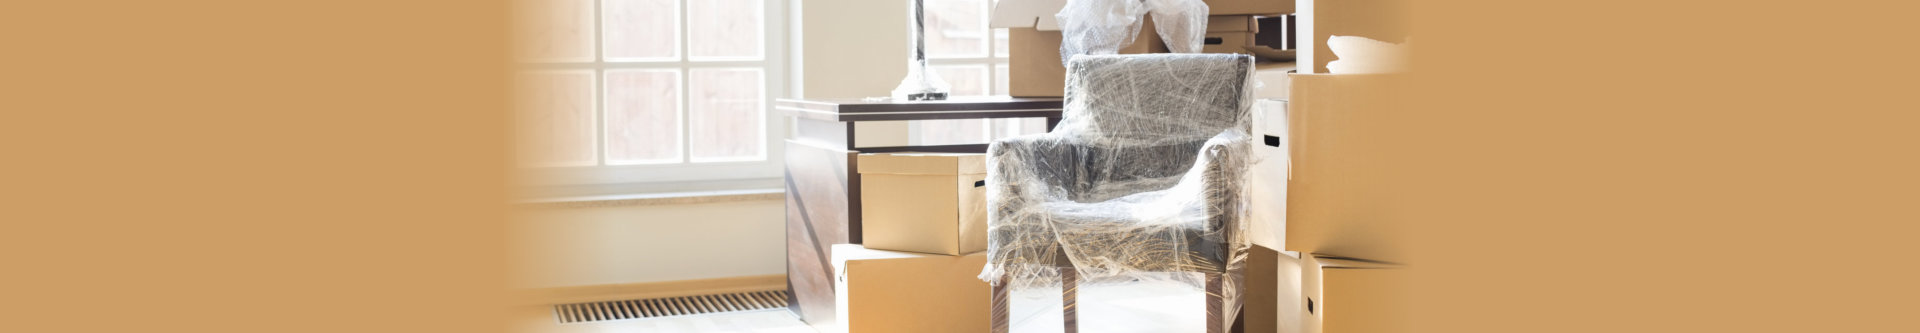 furniture wrapped up